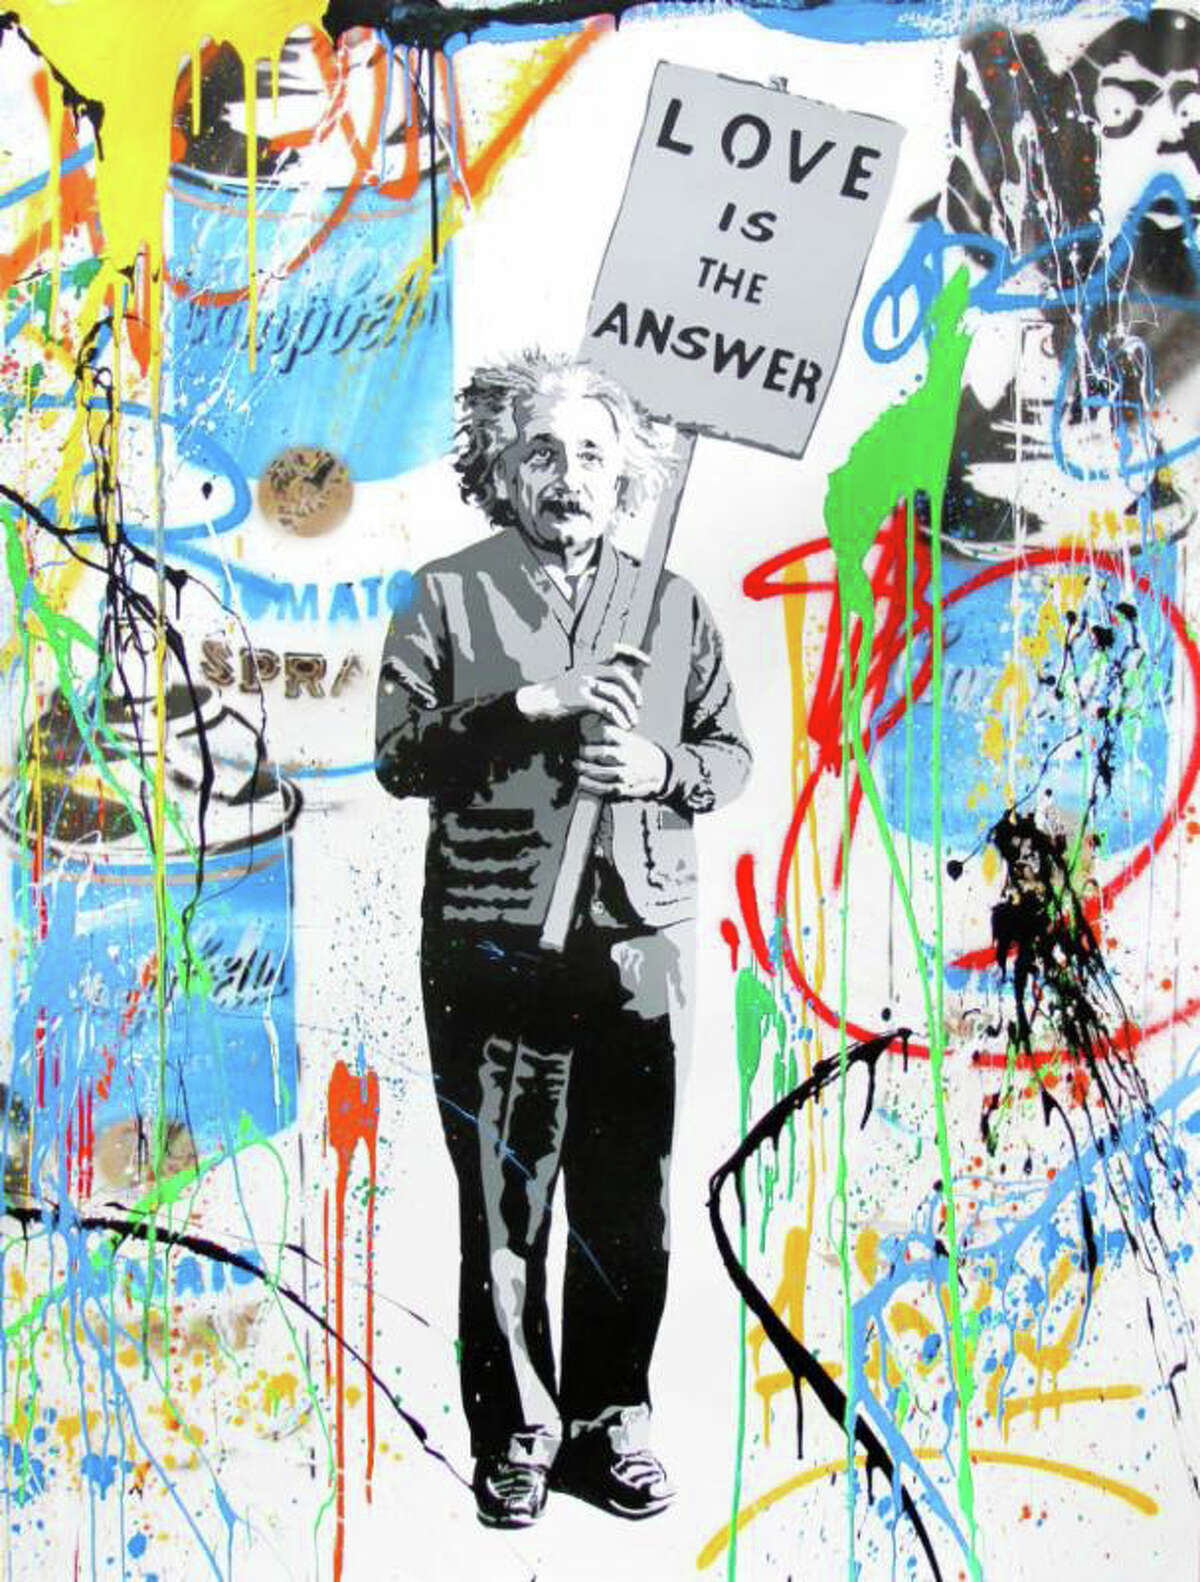 Mr. Brainwash often copies Andy Warhol and other Pop icons.